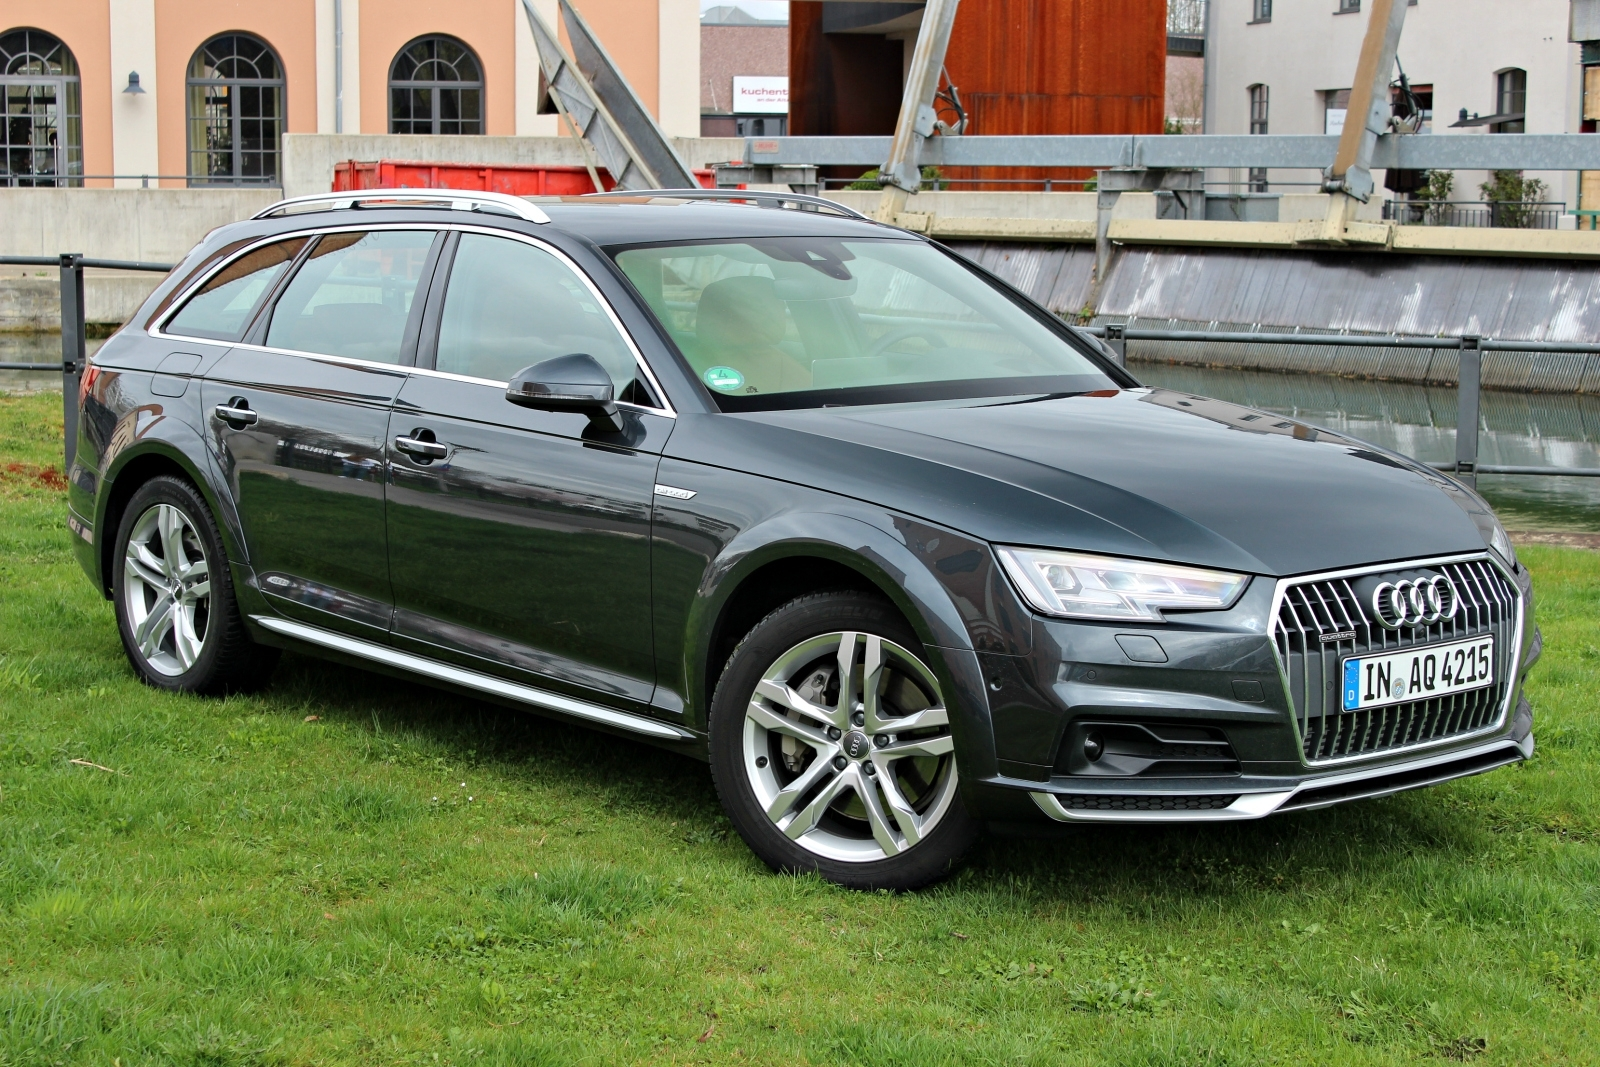 a4 allroad occasion audi a4 allroad occasion bretagne 2 0 tfsi ambition luxe s tronic gris. Black Bedroom Furniture Sets. Home Design Ideas